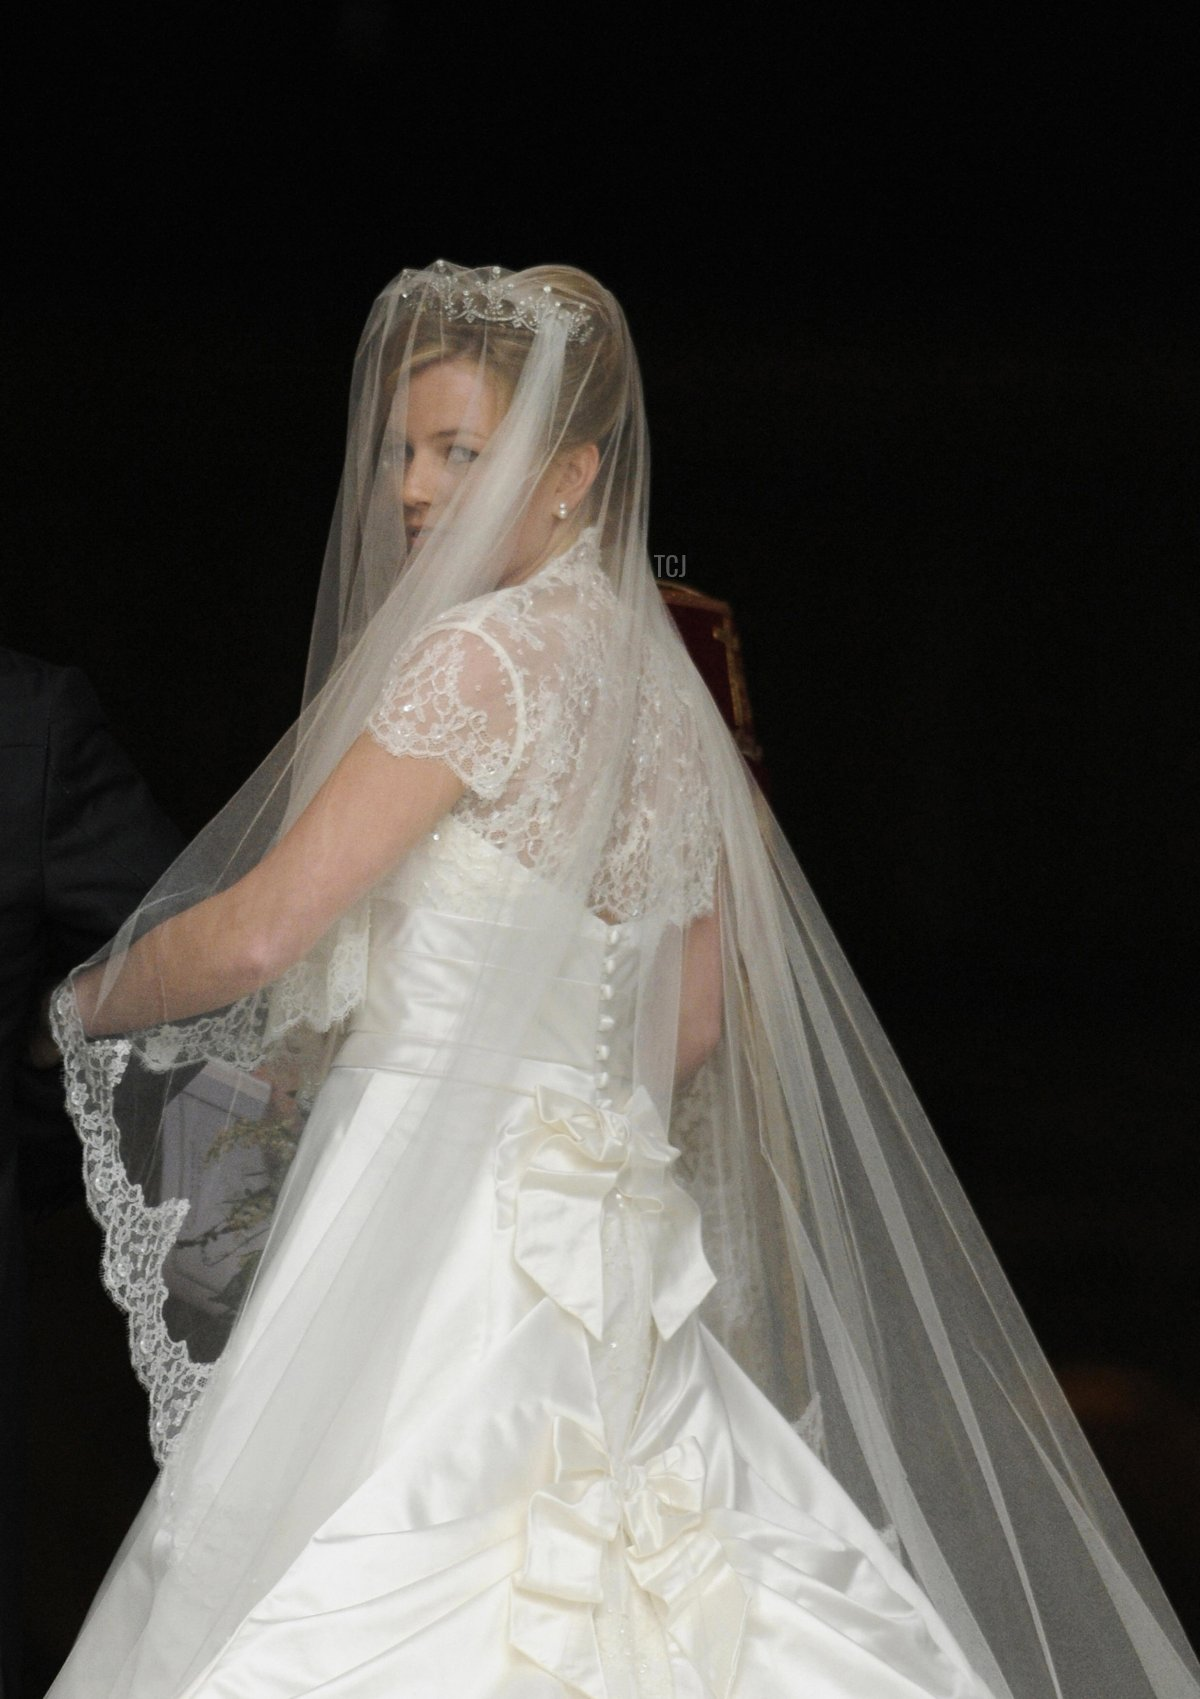 Autumn Kelly 31 looks over her shoulder as she enter St George's Chapel in Windsor on May 17, 2008 to be wed to Peter Phillips 30